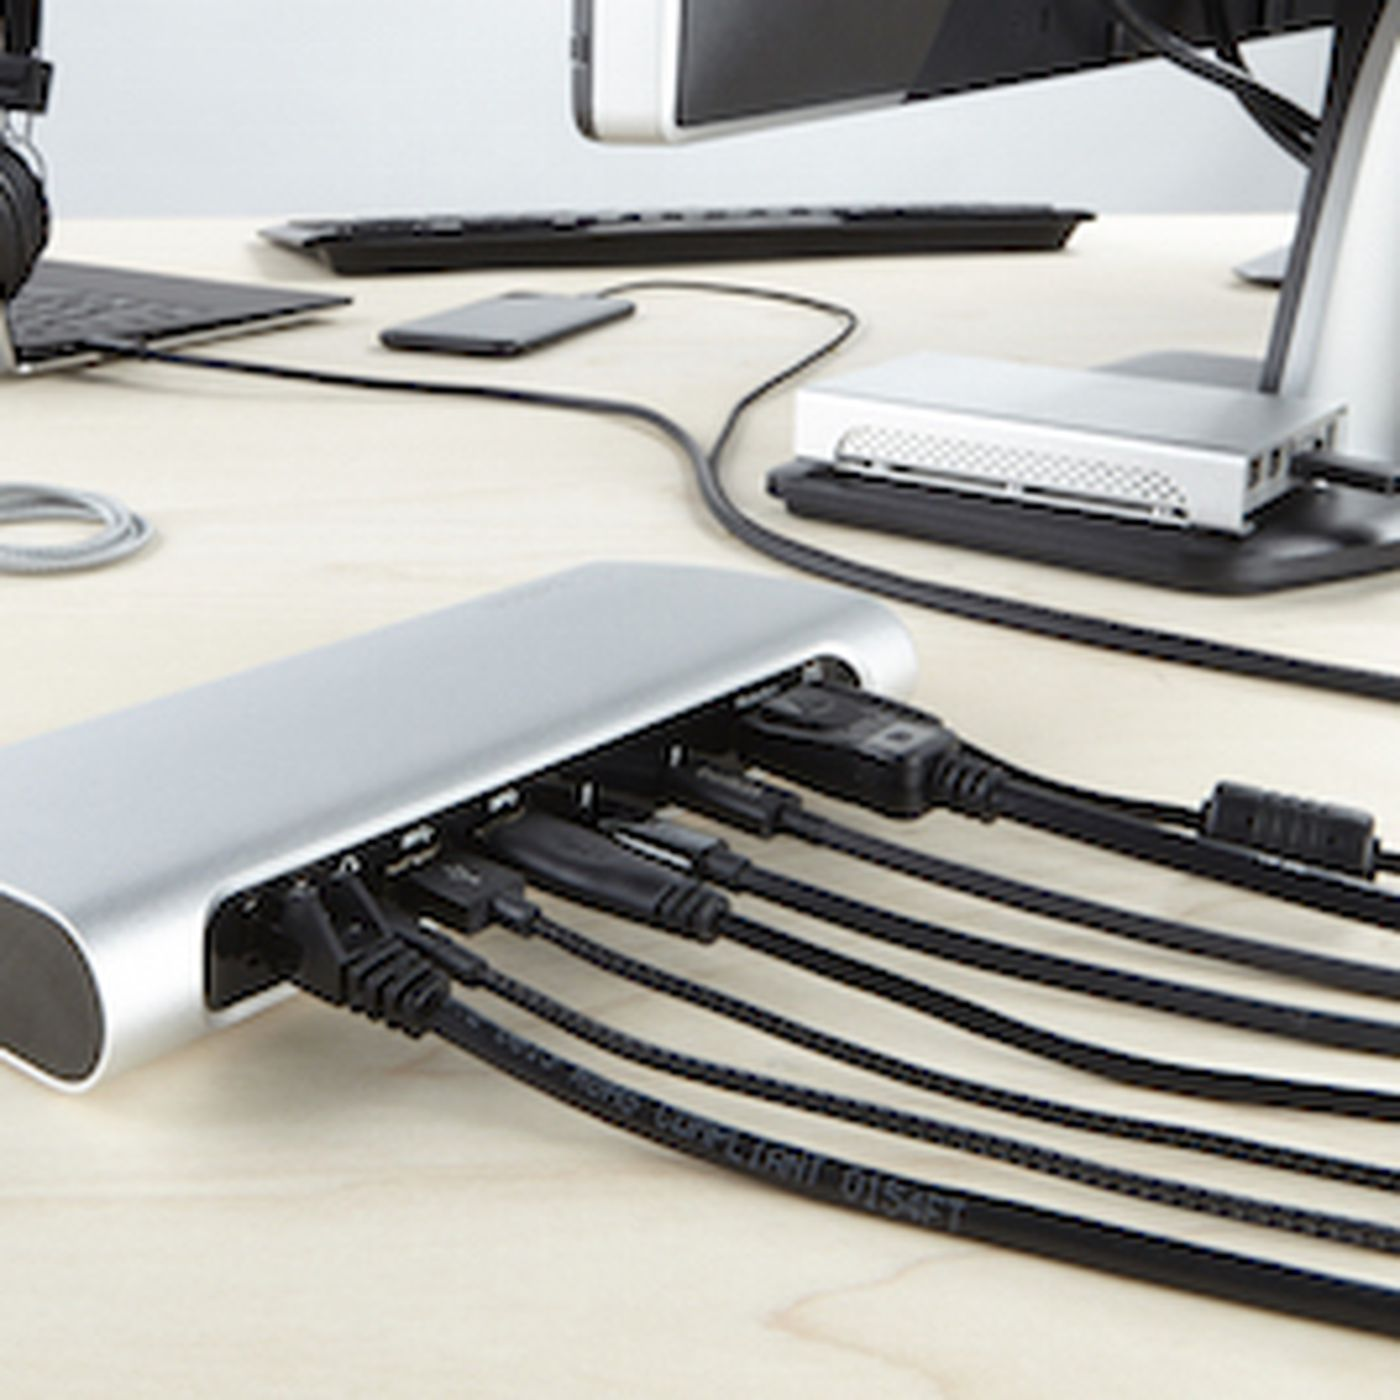 Belkin's Thunderbolt 3 dock can connect your PC to 8